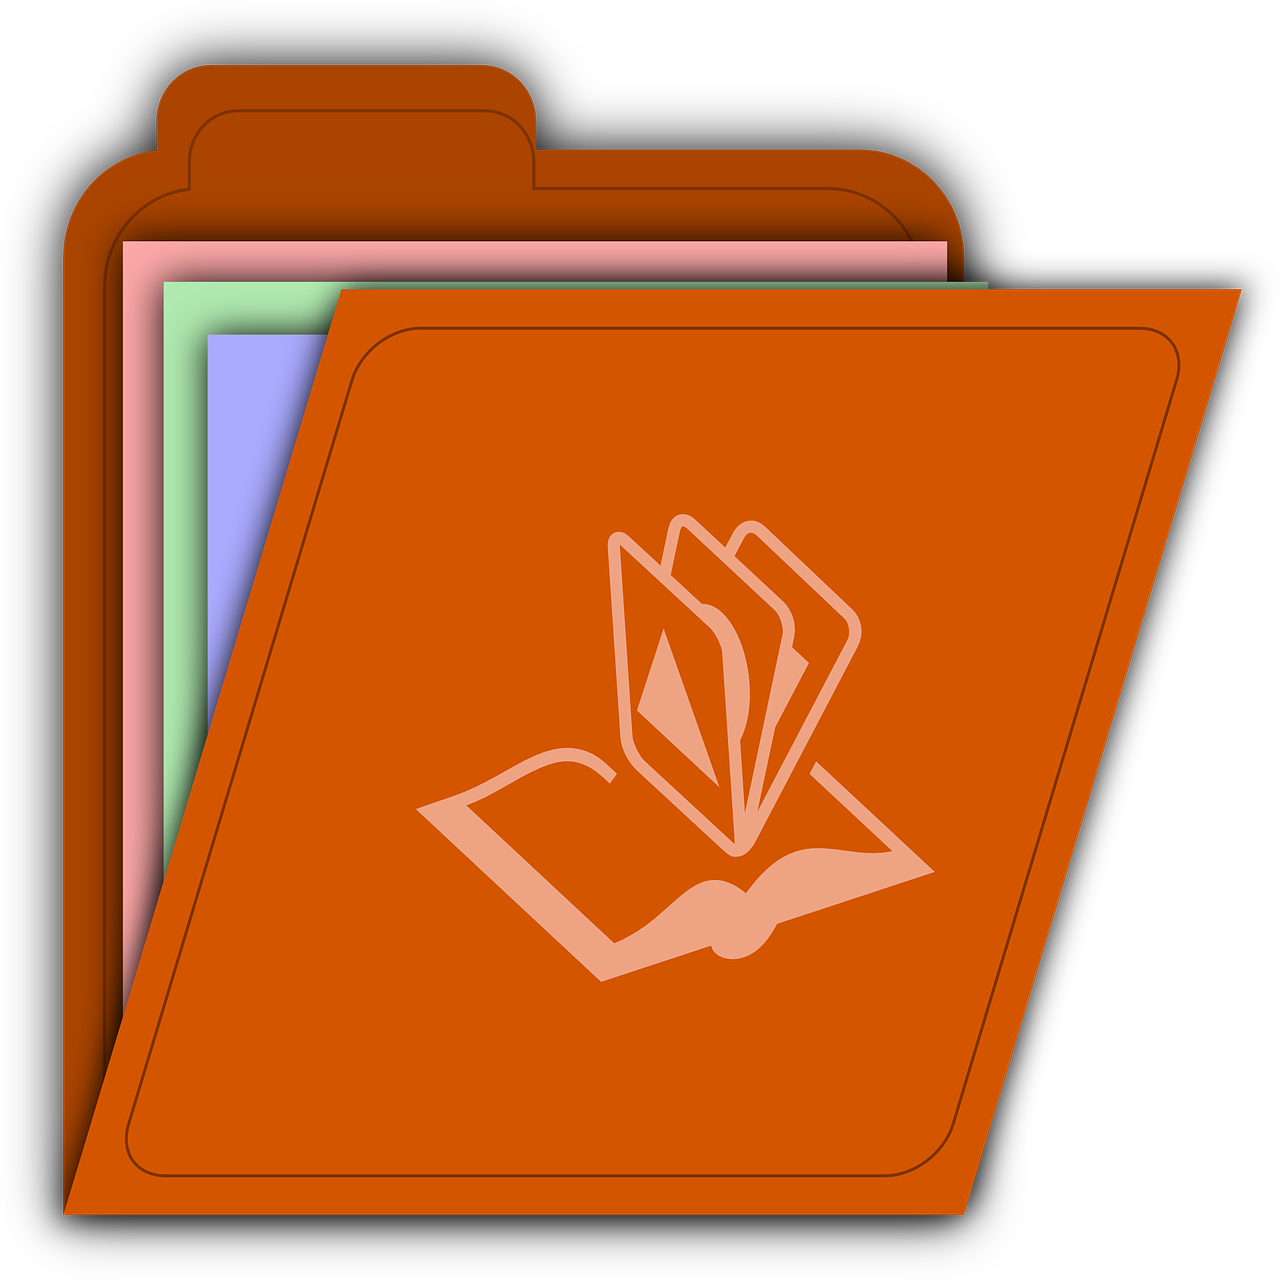 Image of a folder with book symbol